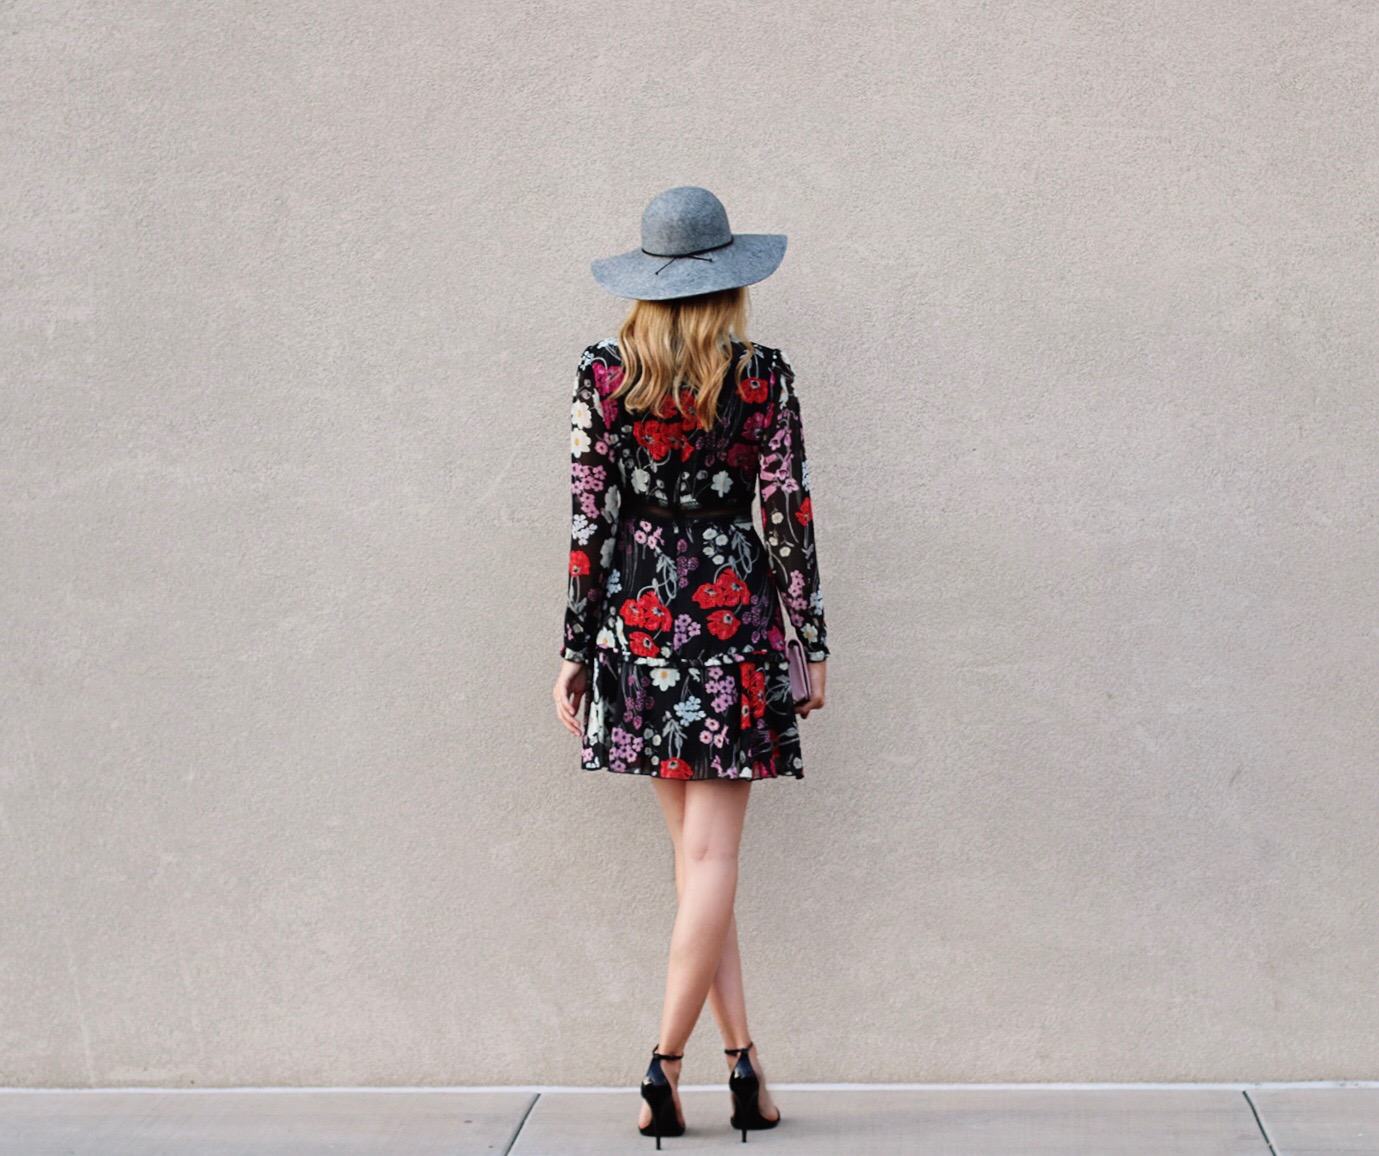 Donna-Morgan-dress-floral-3.jpg